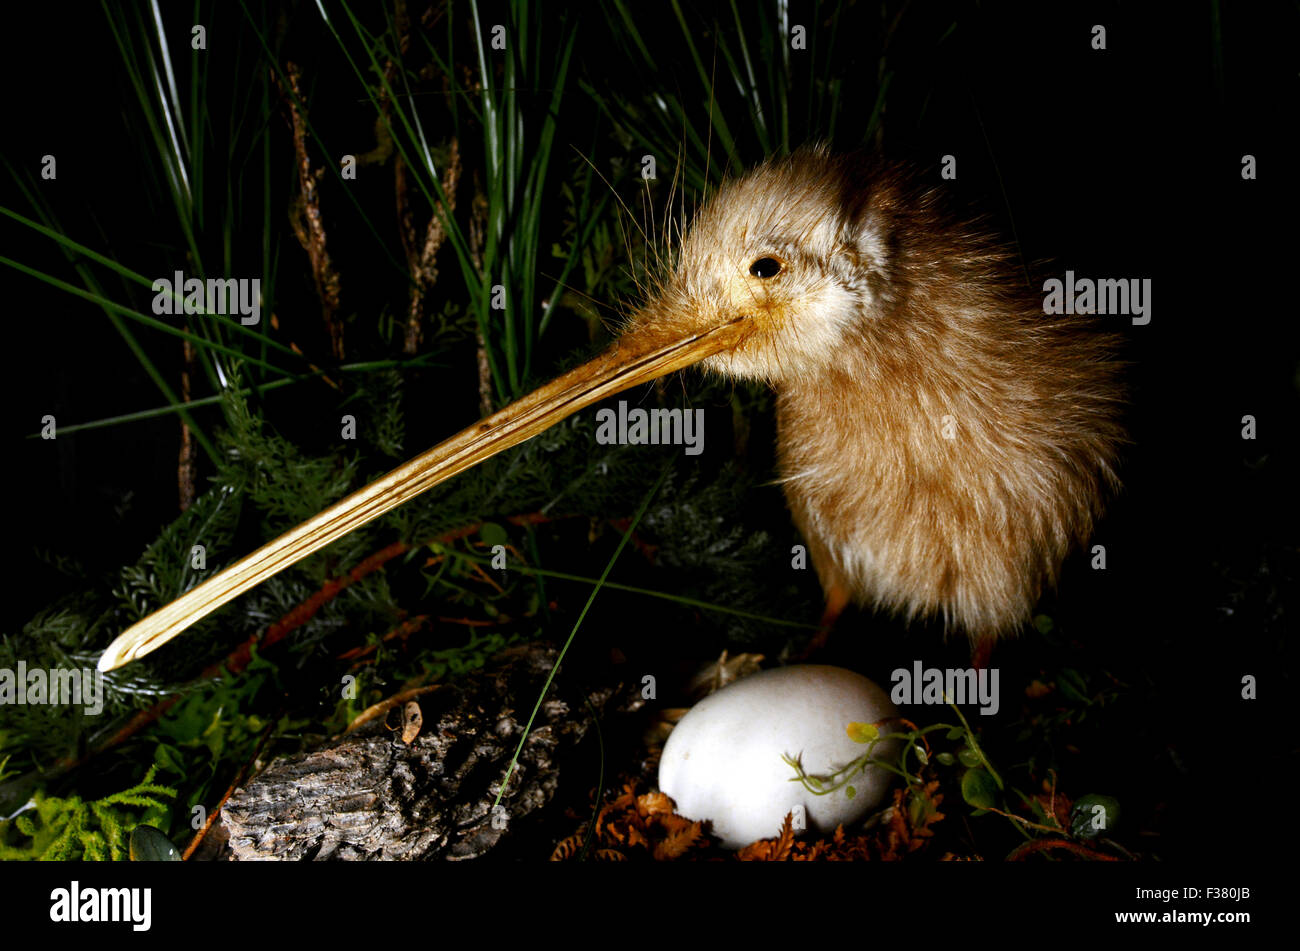 Kiwi bird and an egg in New Zealand. - Stock Image